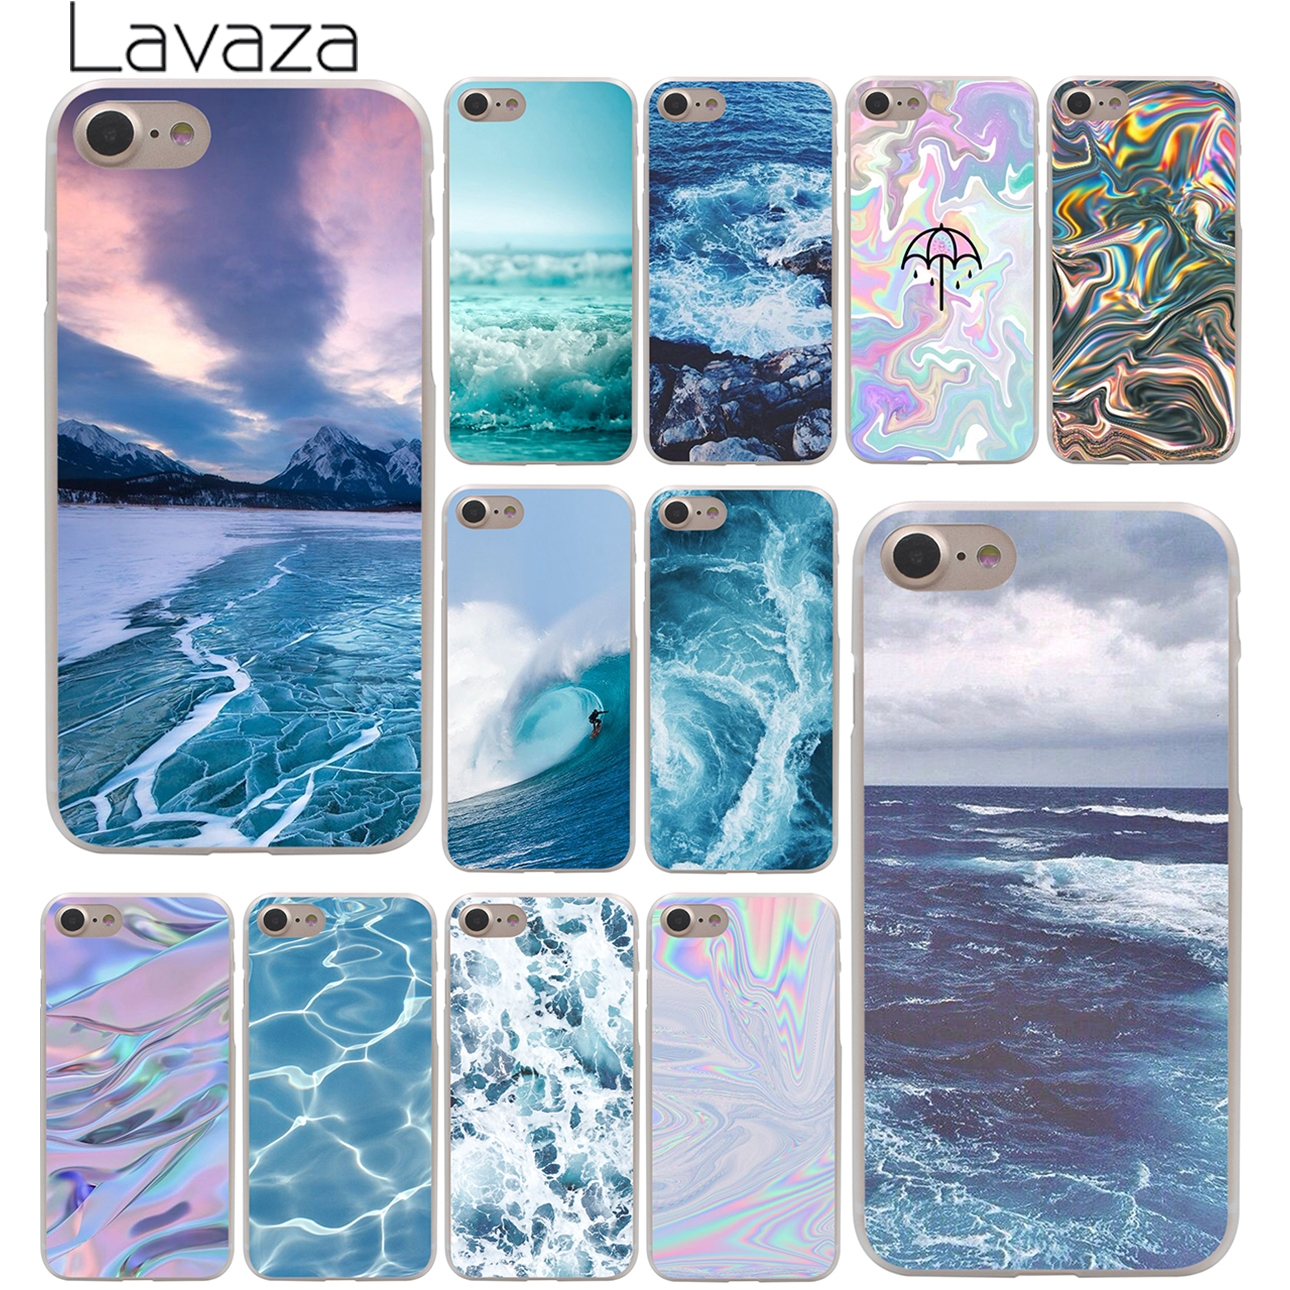 The waves Ocean water Hard Case Transparent for iPhone 7 7 Plus 6 6s Plus 5 5S SE 5C 4 4S